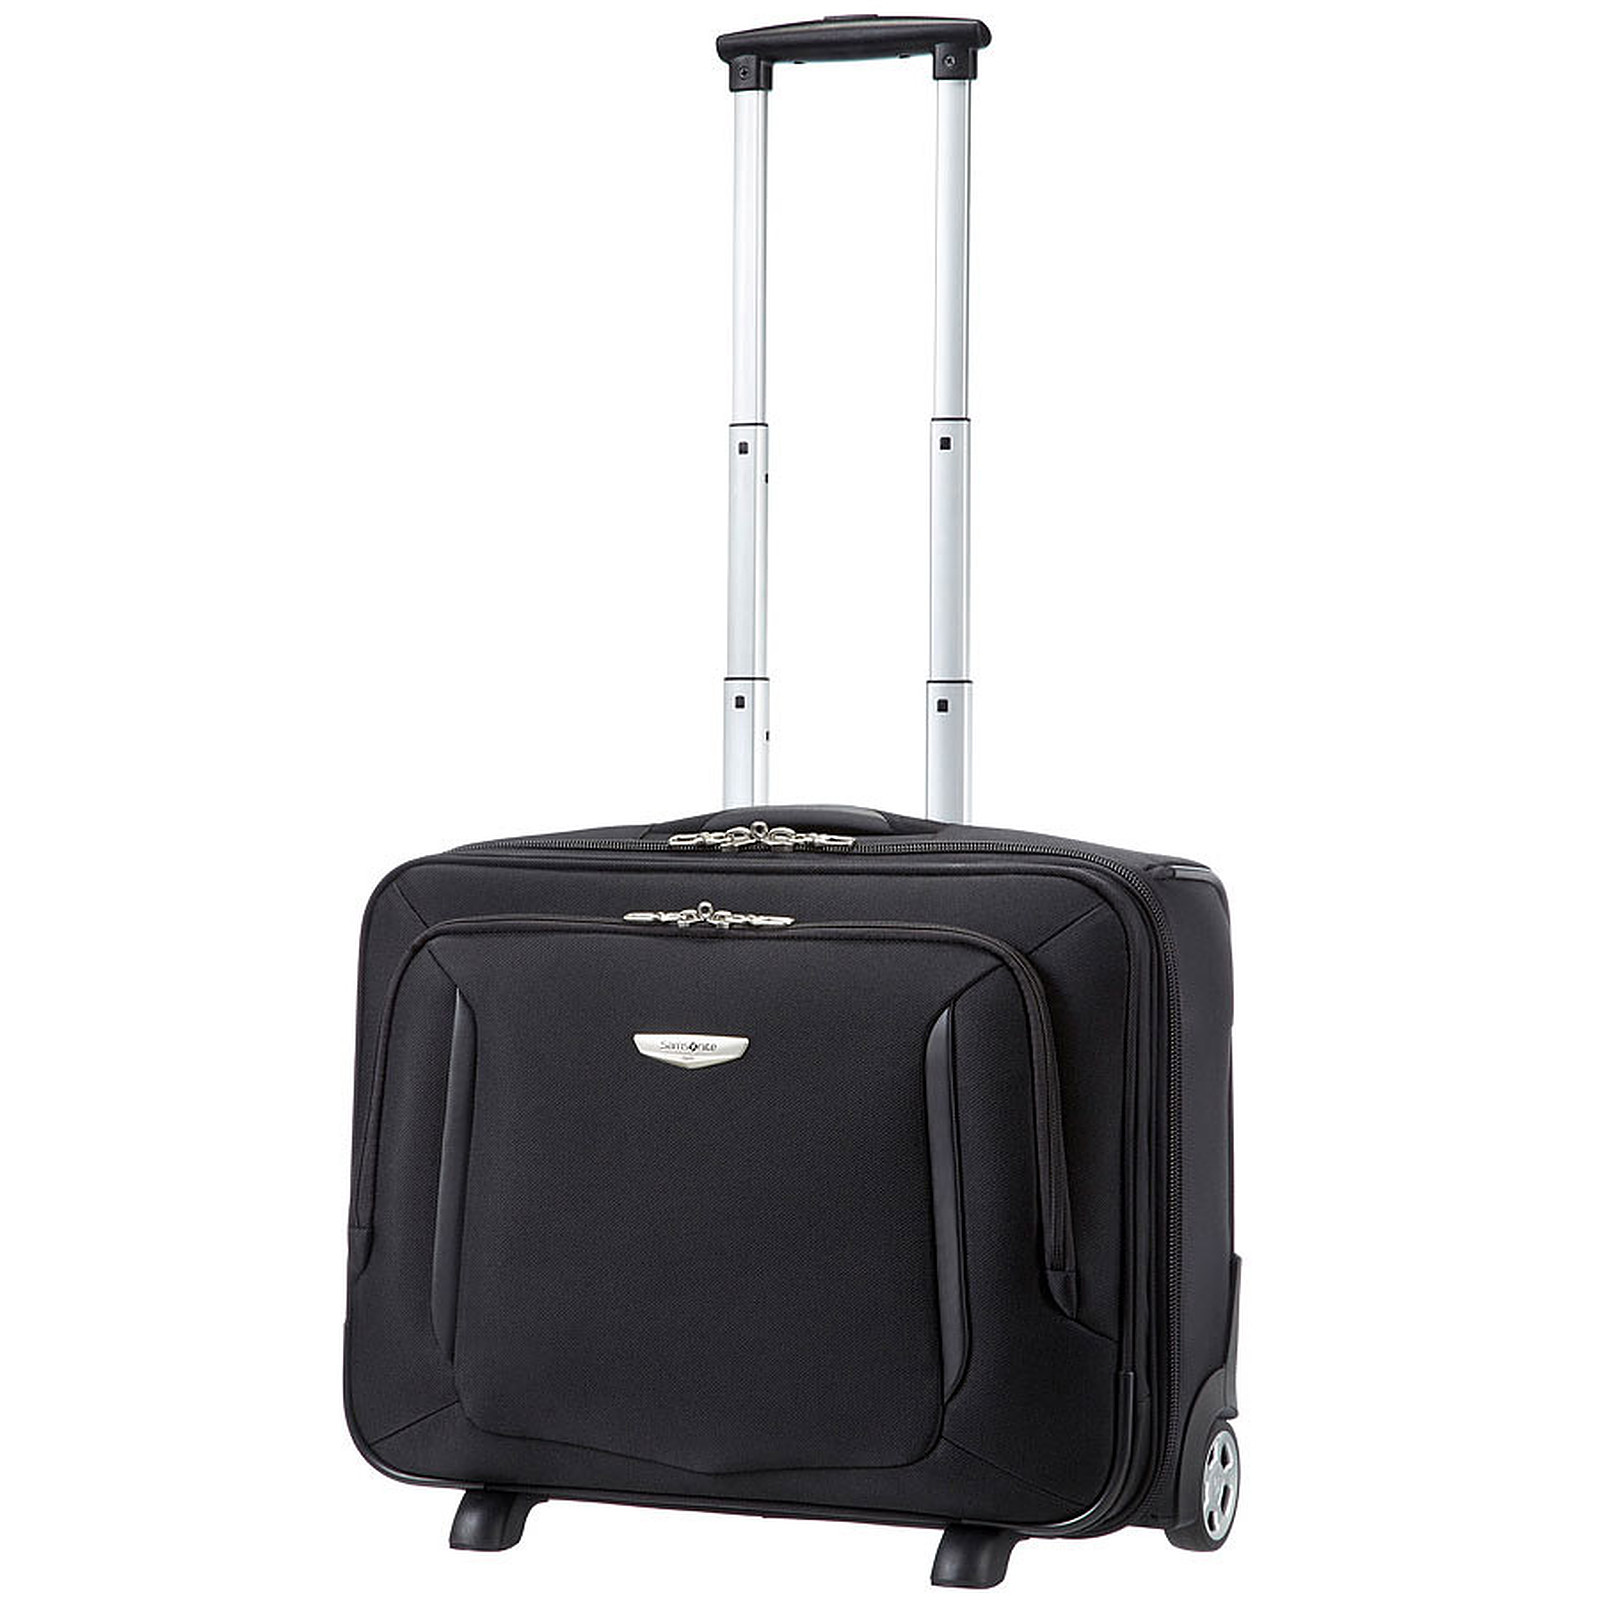 Samsonite X'Blade Business 2.0 Trolley 17.3'' (coloris noir)